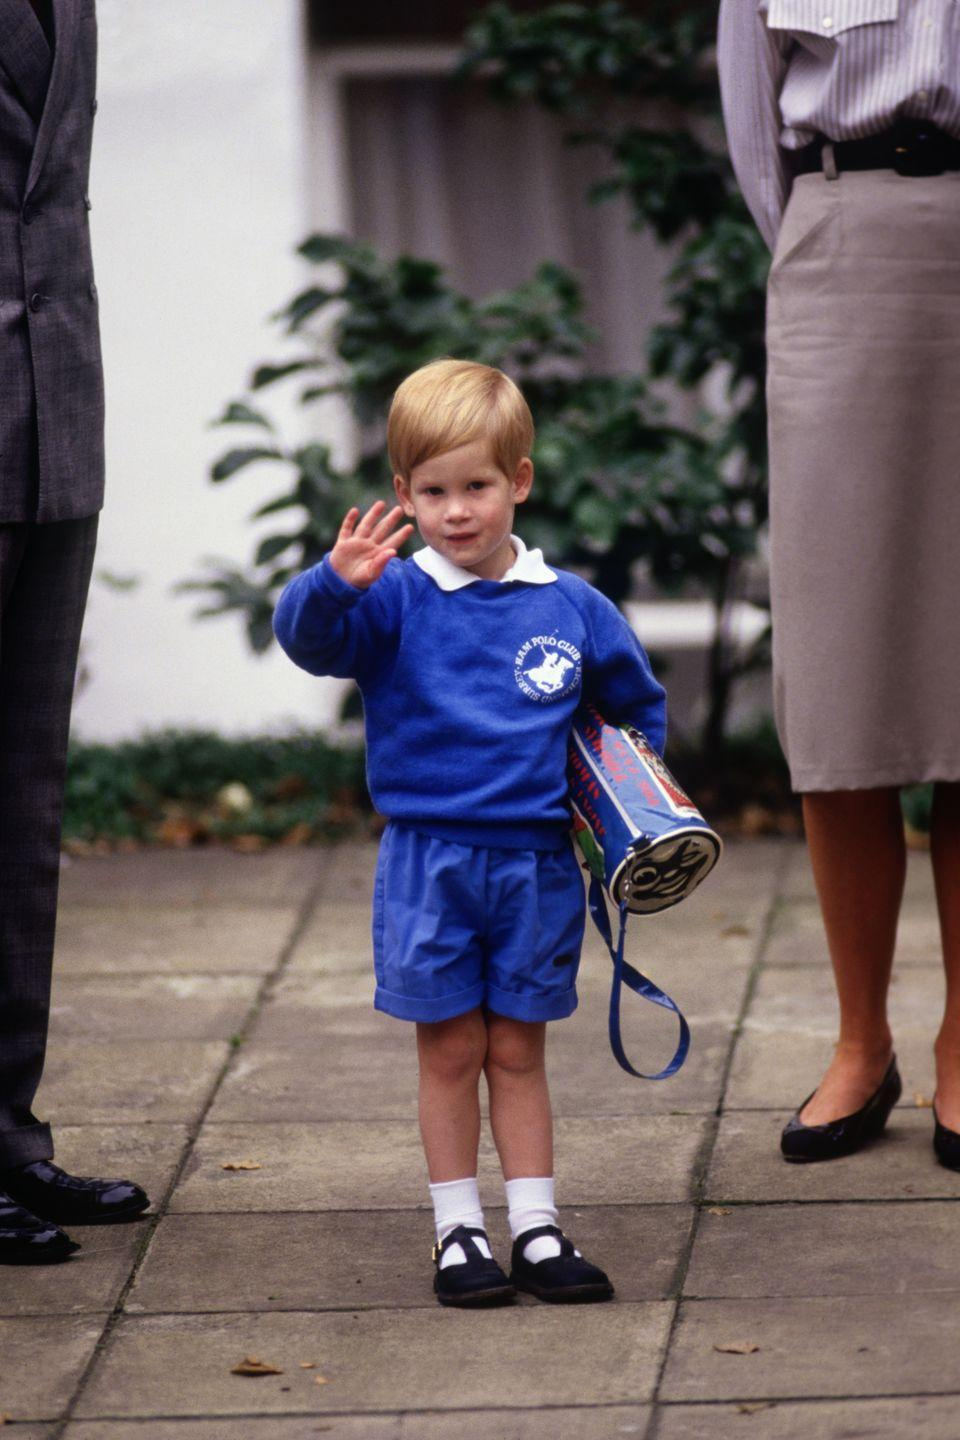 <p>Prince Harry waved to photographers as he arrived for his first day at Mrs. Mynors's Nursery School in London.</p>